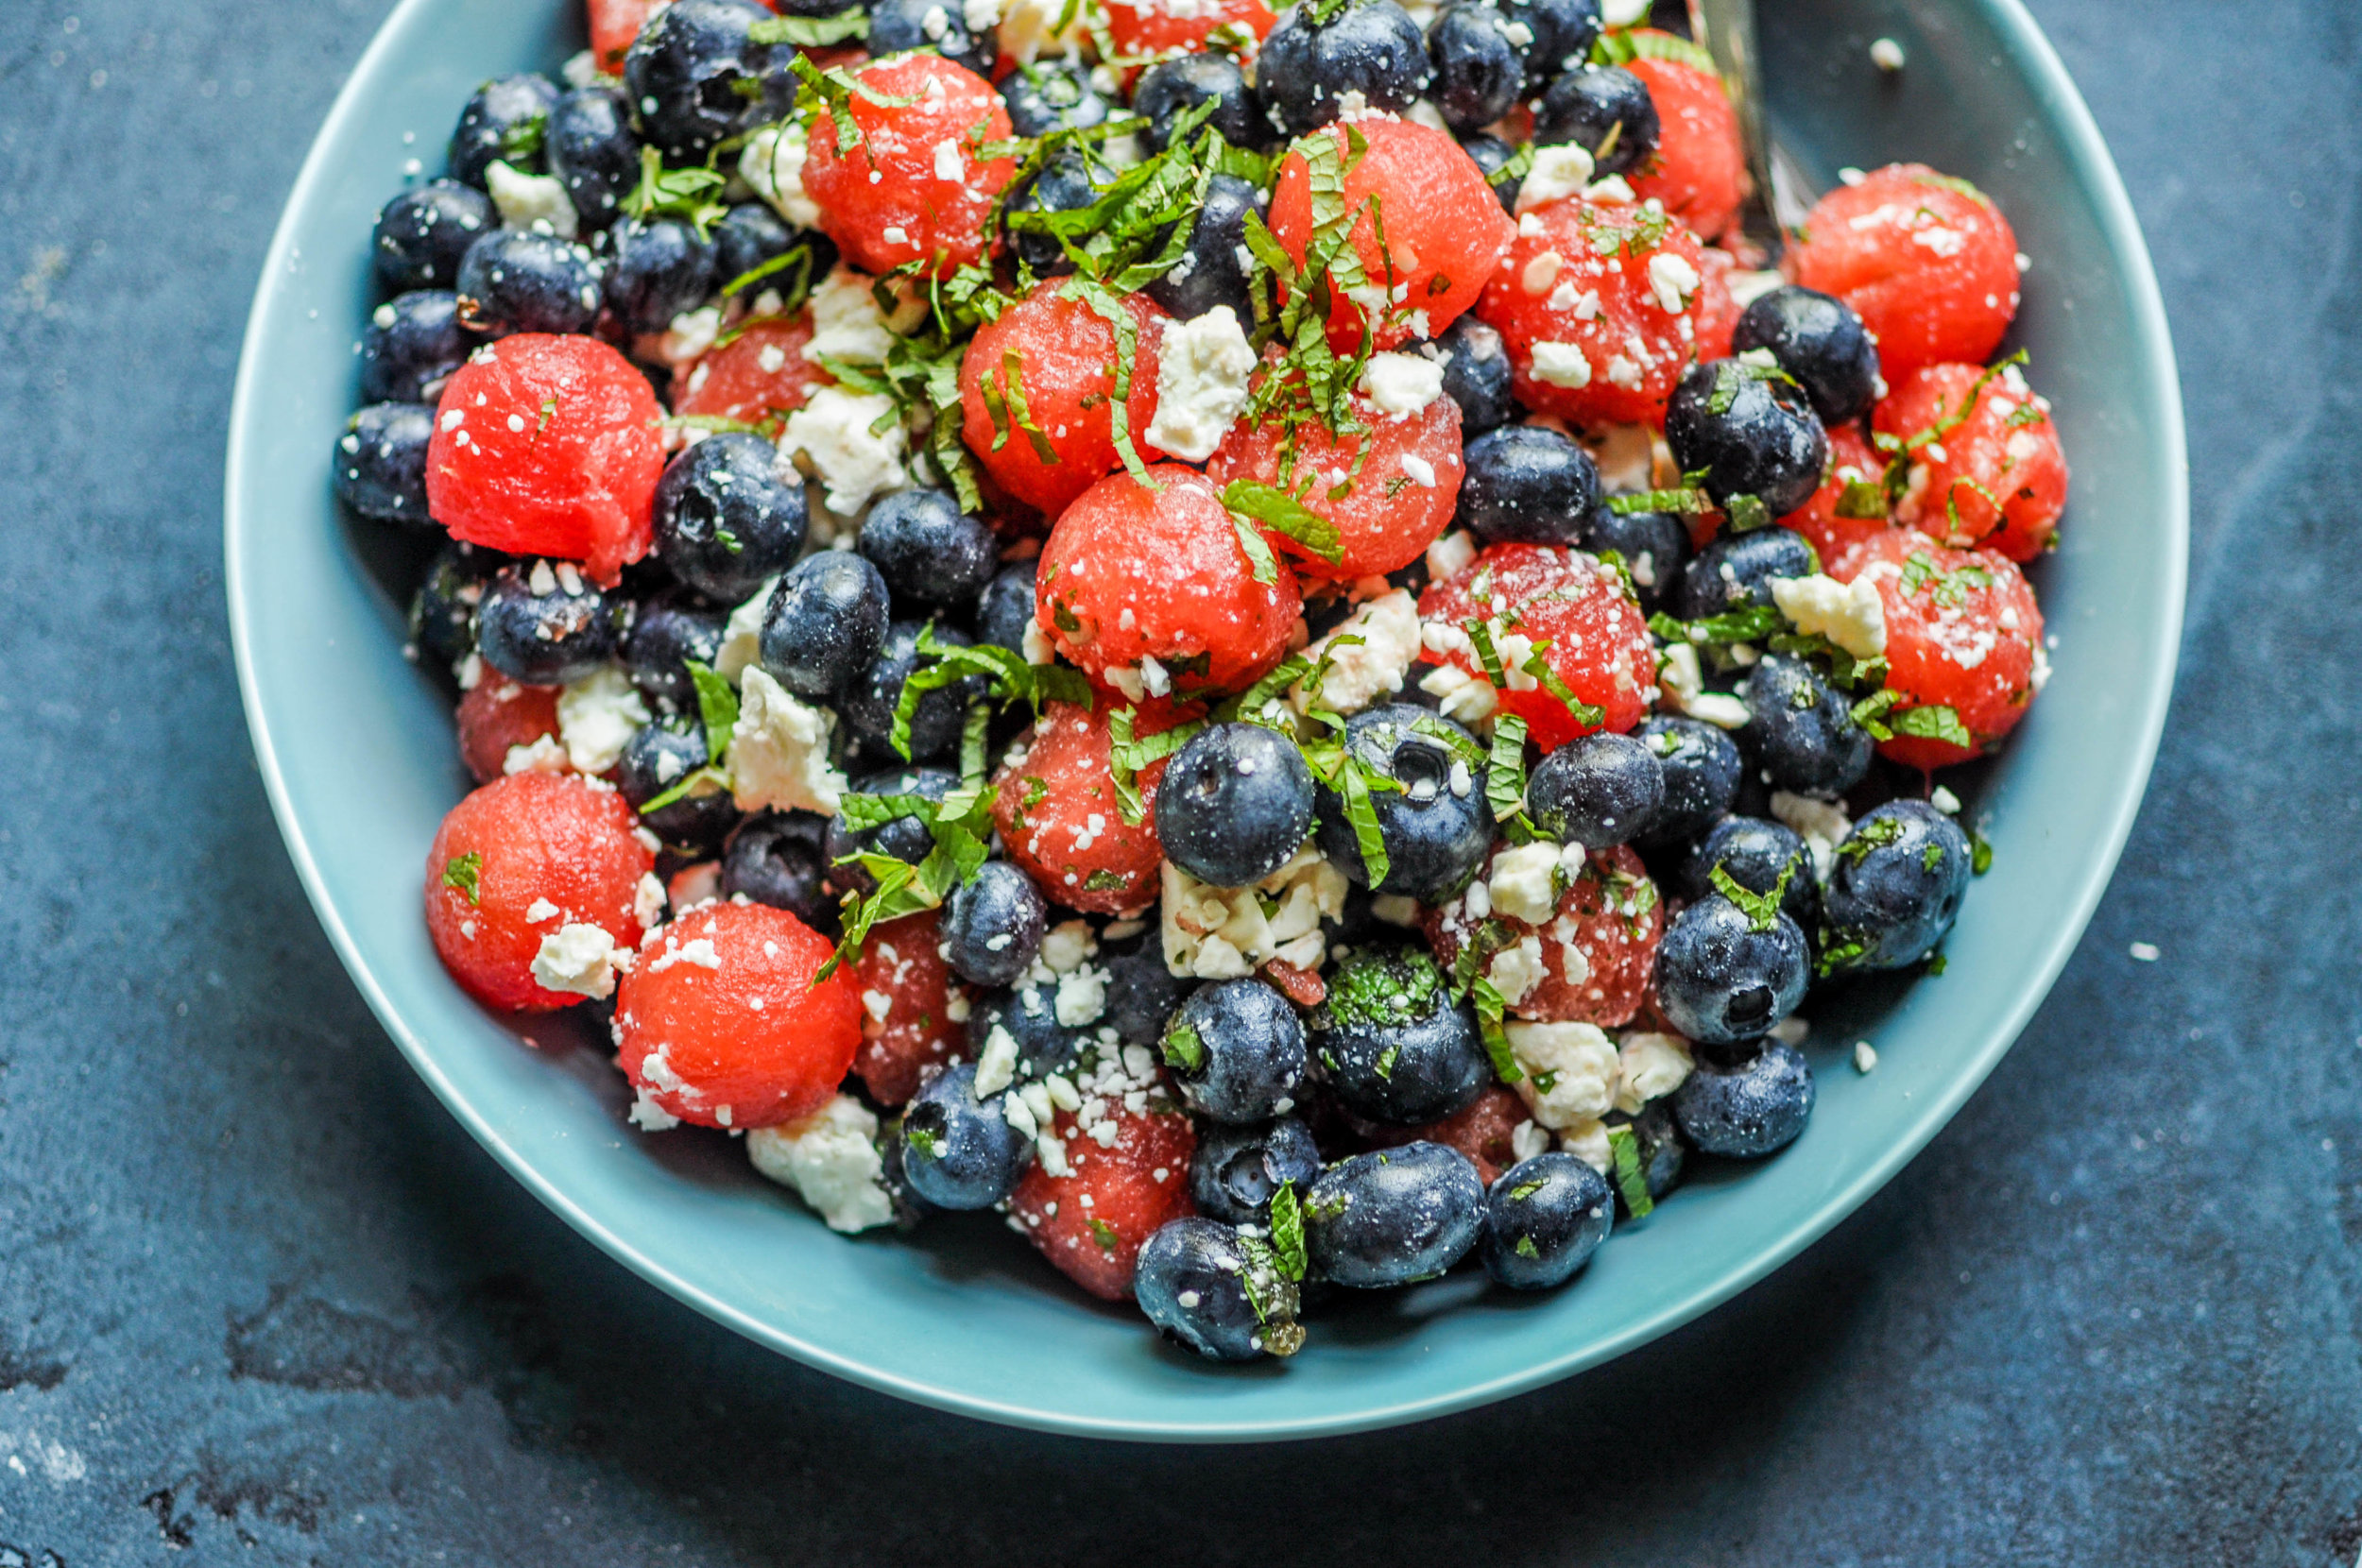 This watermelon, blueberry, and feta salad is a delightful celebration of summer fruit!